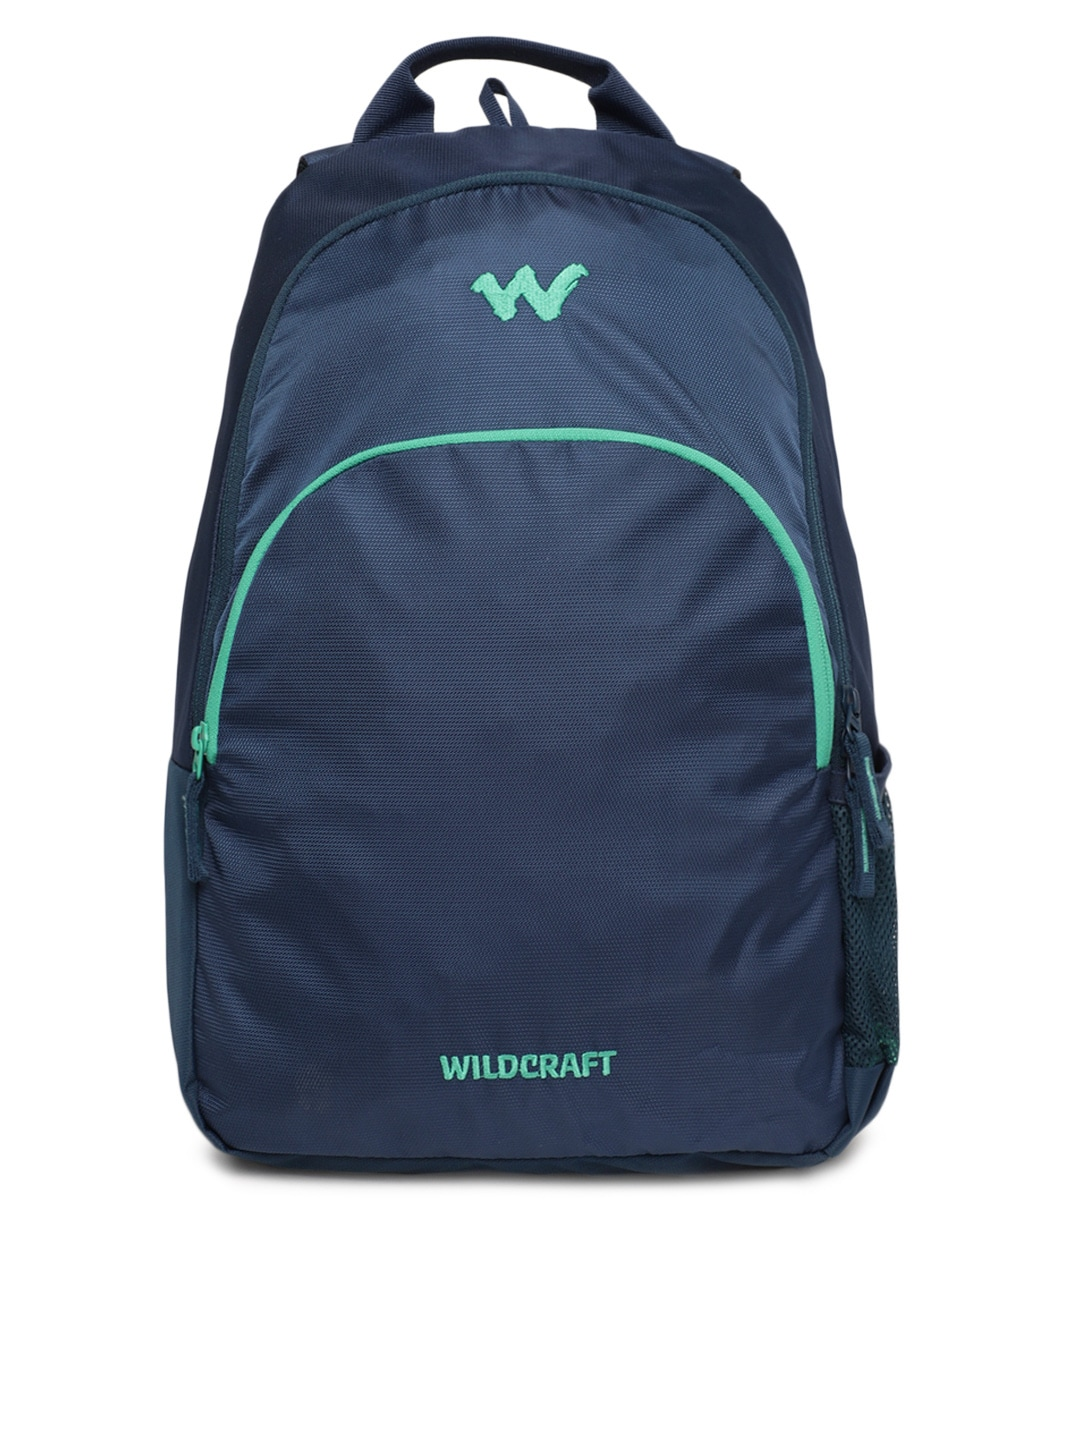 Wildcraft Store - Buy Wildcraft Products Online in India  f7ee3515c2c3d